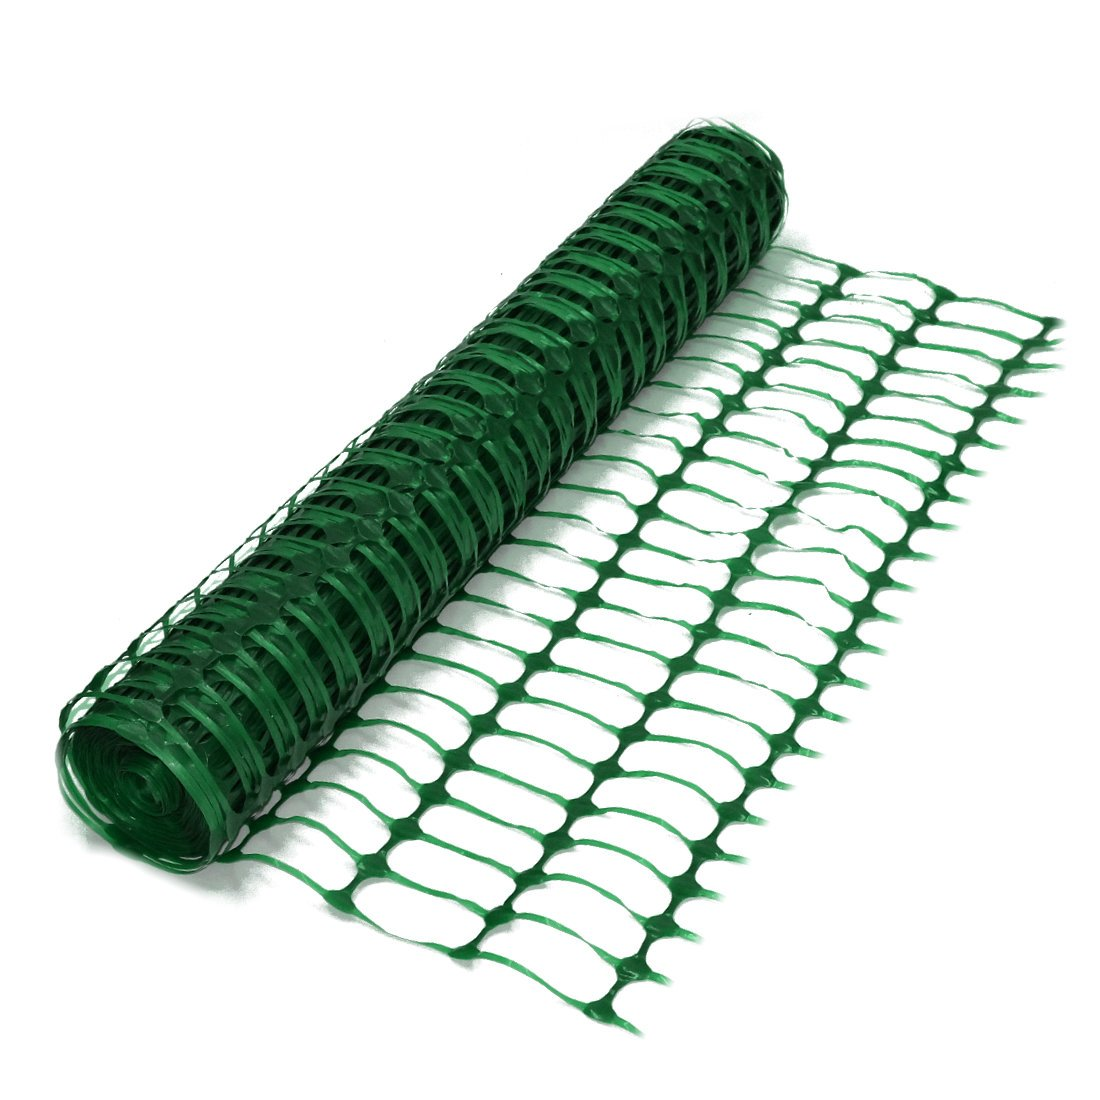 Green Plastic Barrier Mesh Fencing Netting 4kg - 1m x 50m Roll True Products